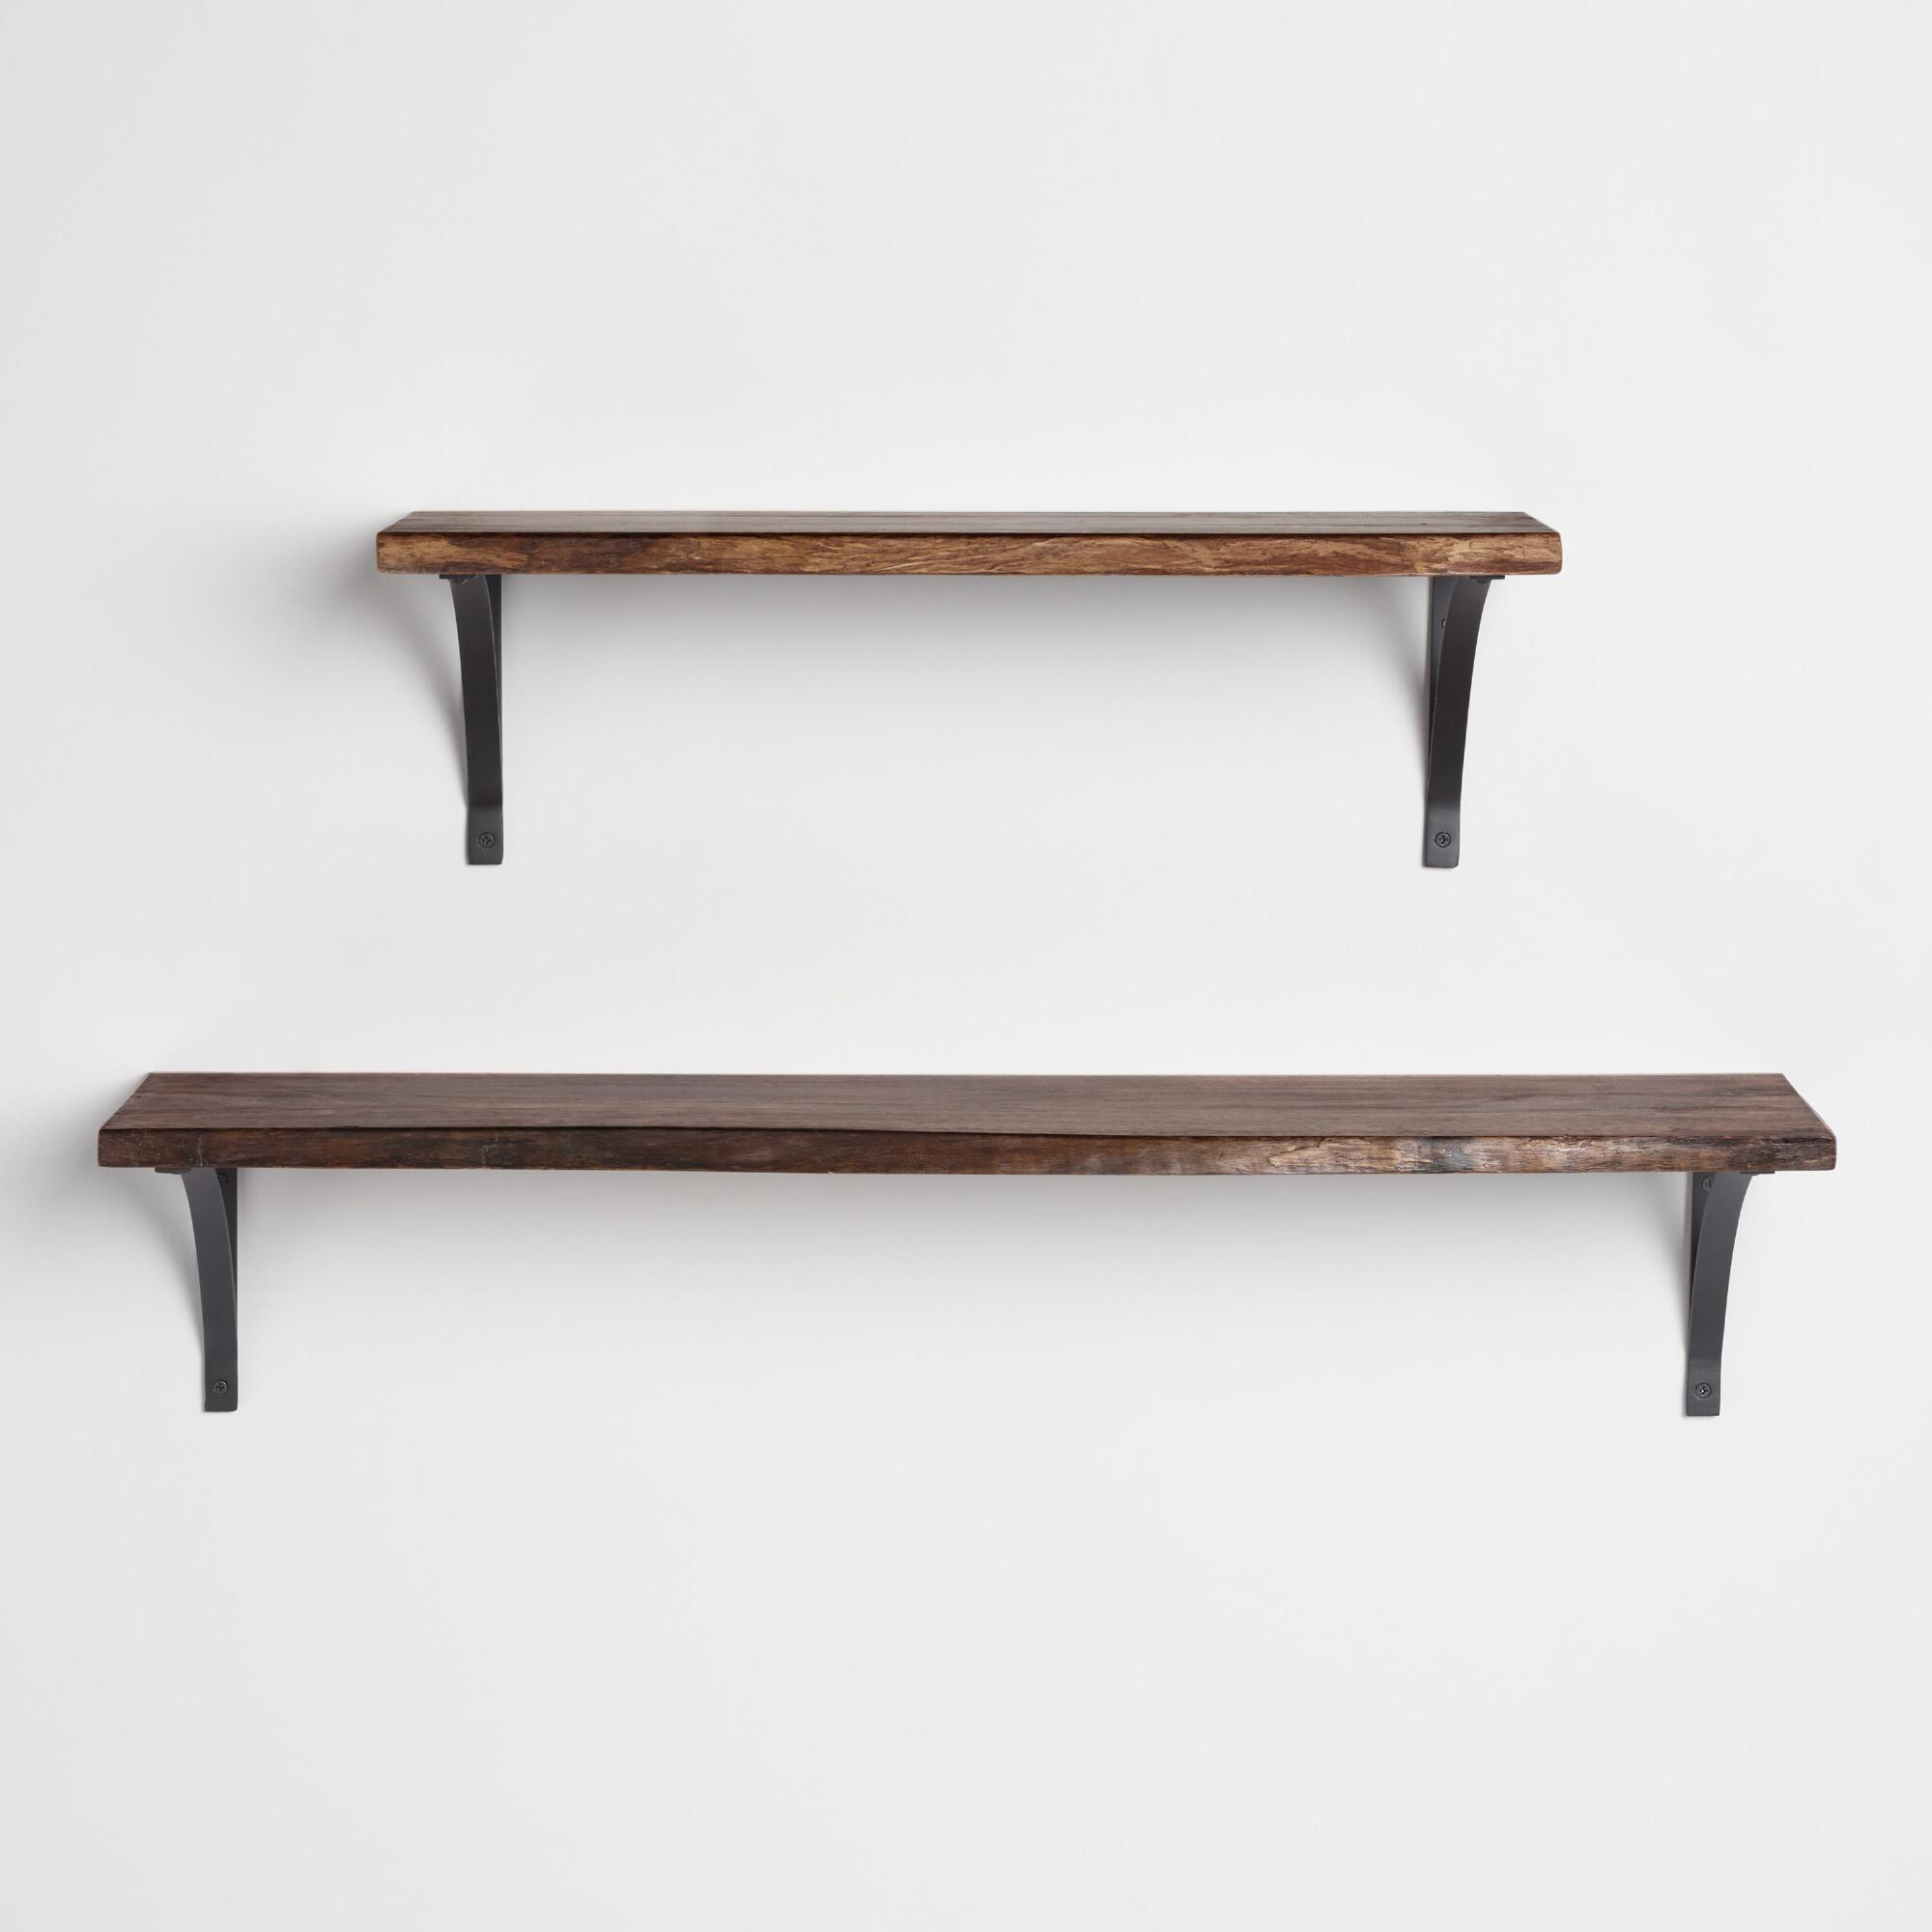 Design Wood Shelves For Walls wall shelves storage and racks world market organic edge wood mix match shelf collection